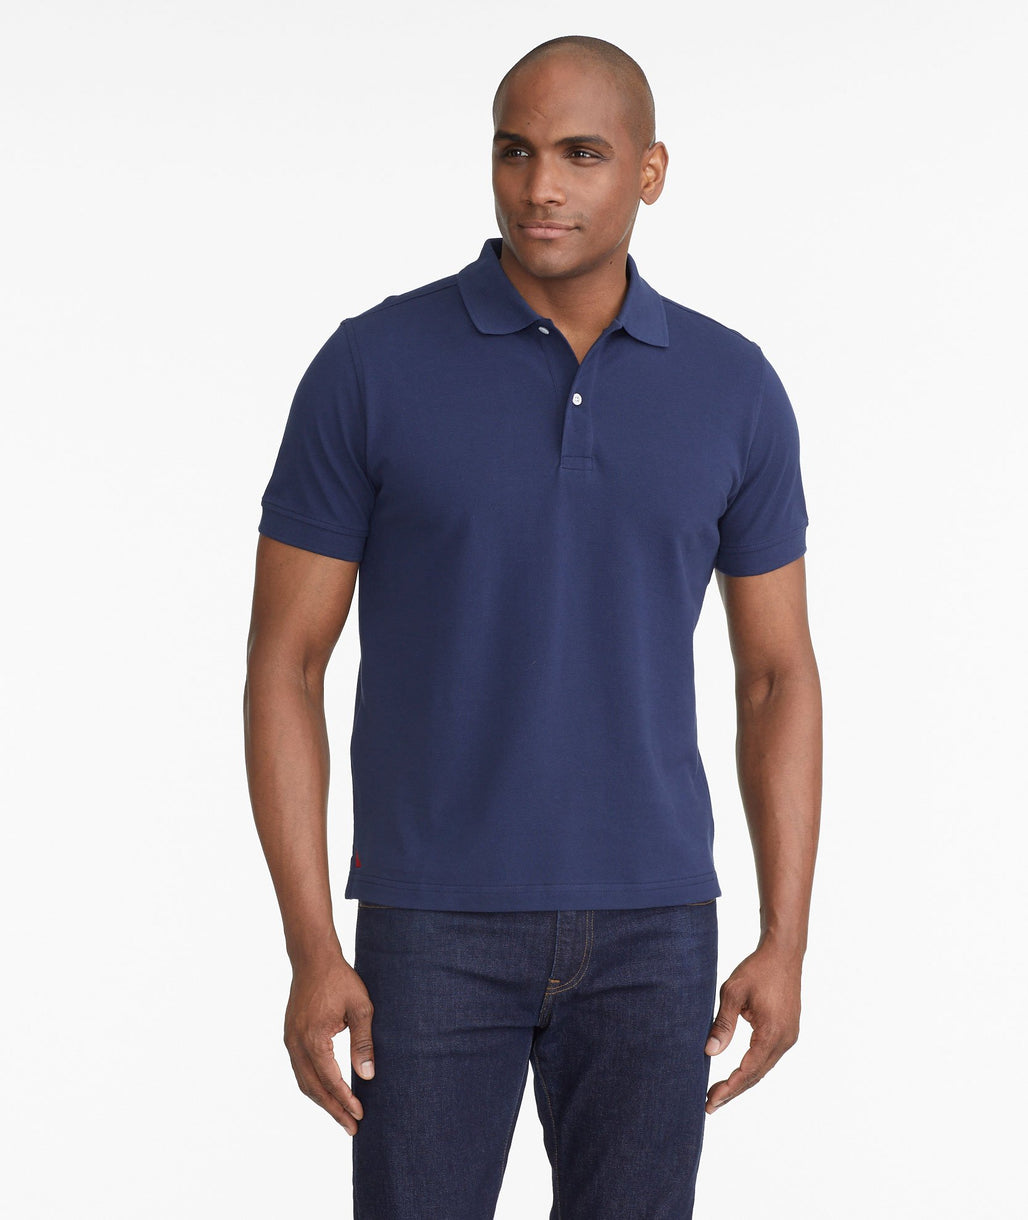 Model wearing a Navy The Classic Pique Polo